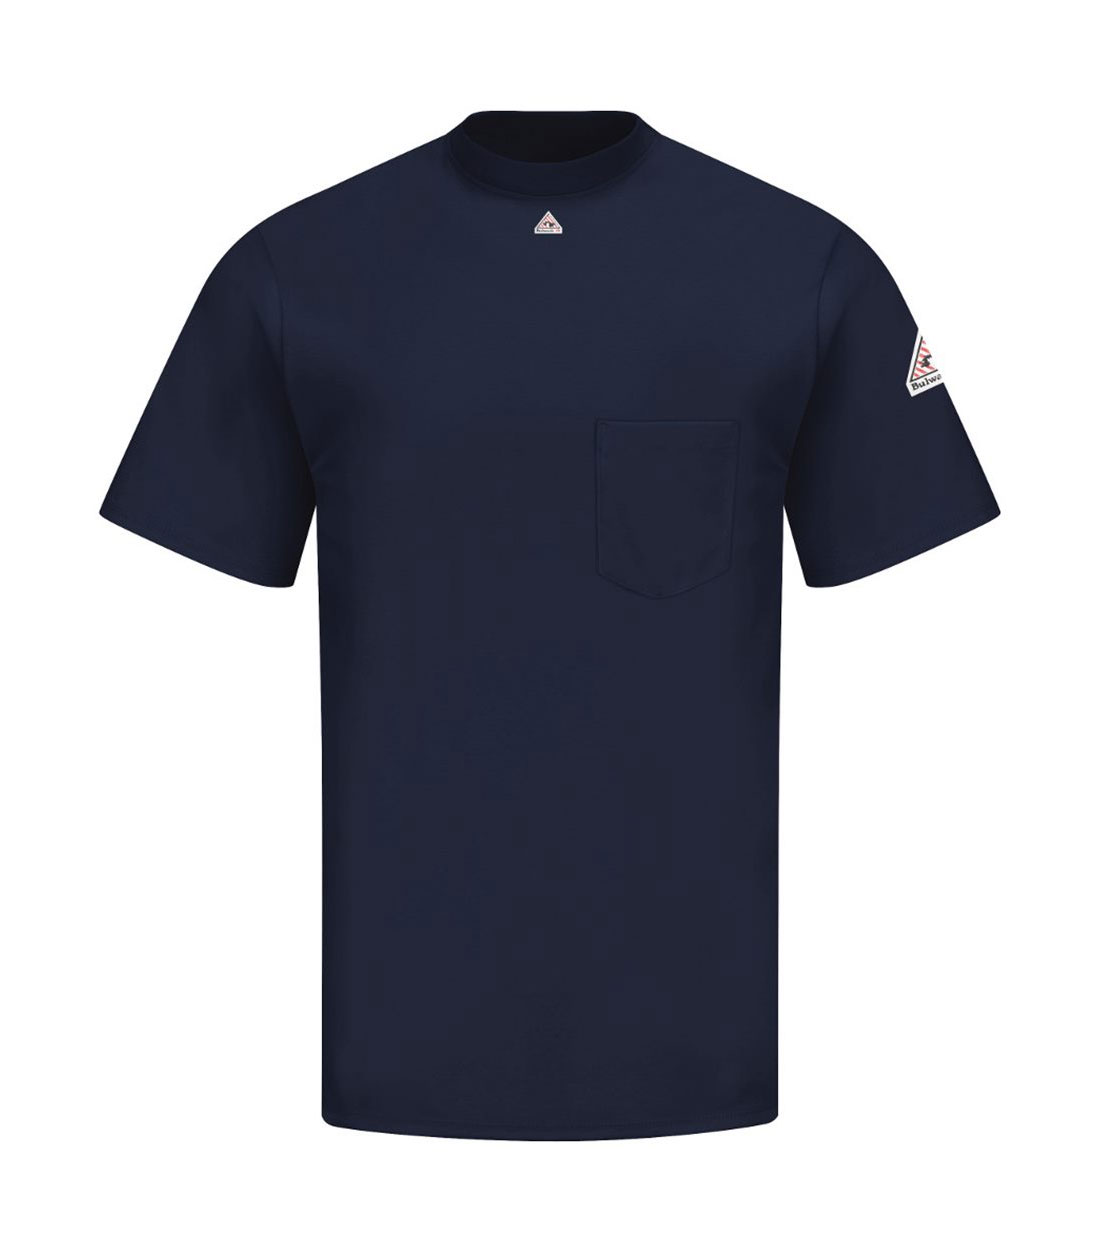 Bulwark® Fire Resistant Knit Short Sleeve T-Shirt